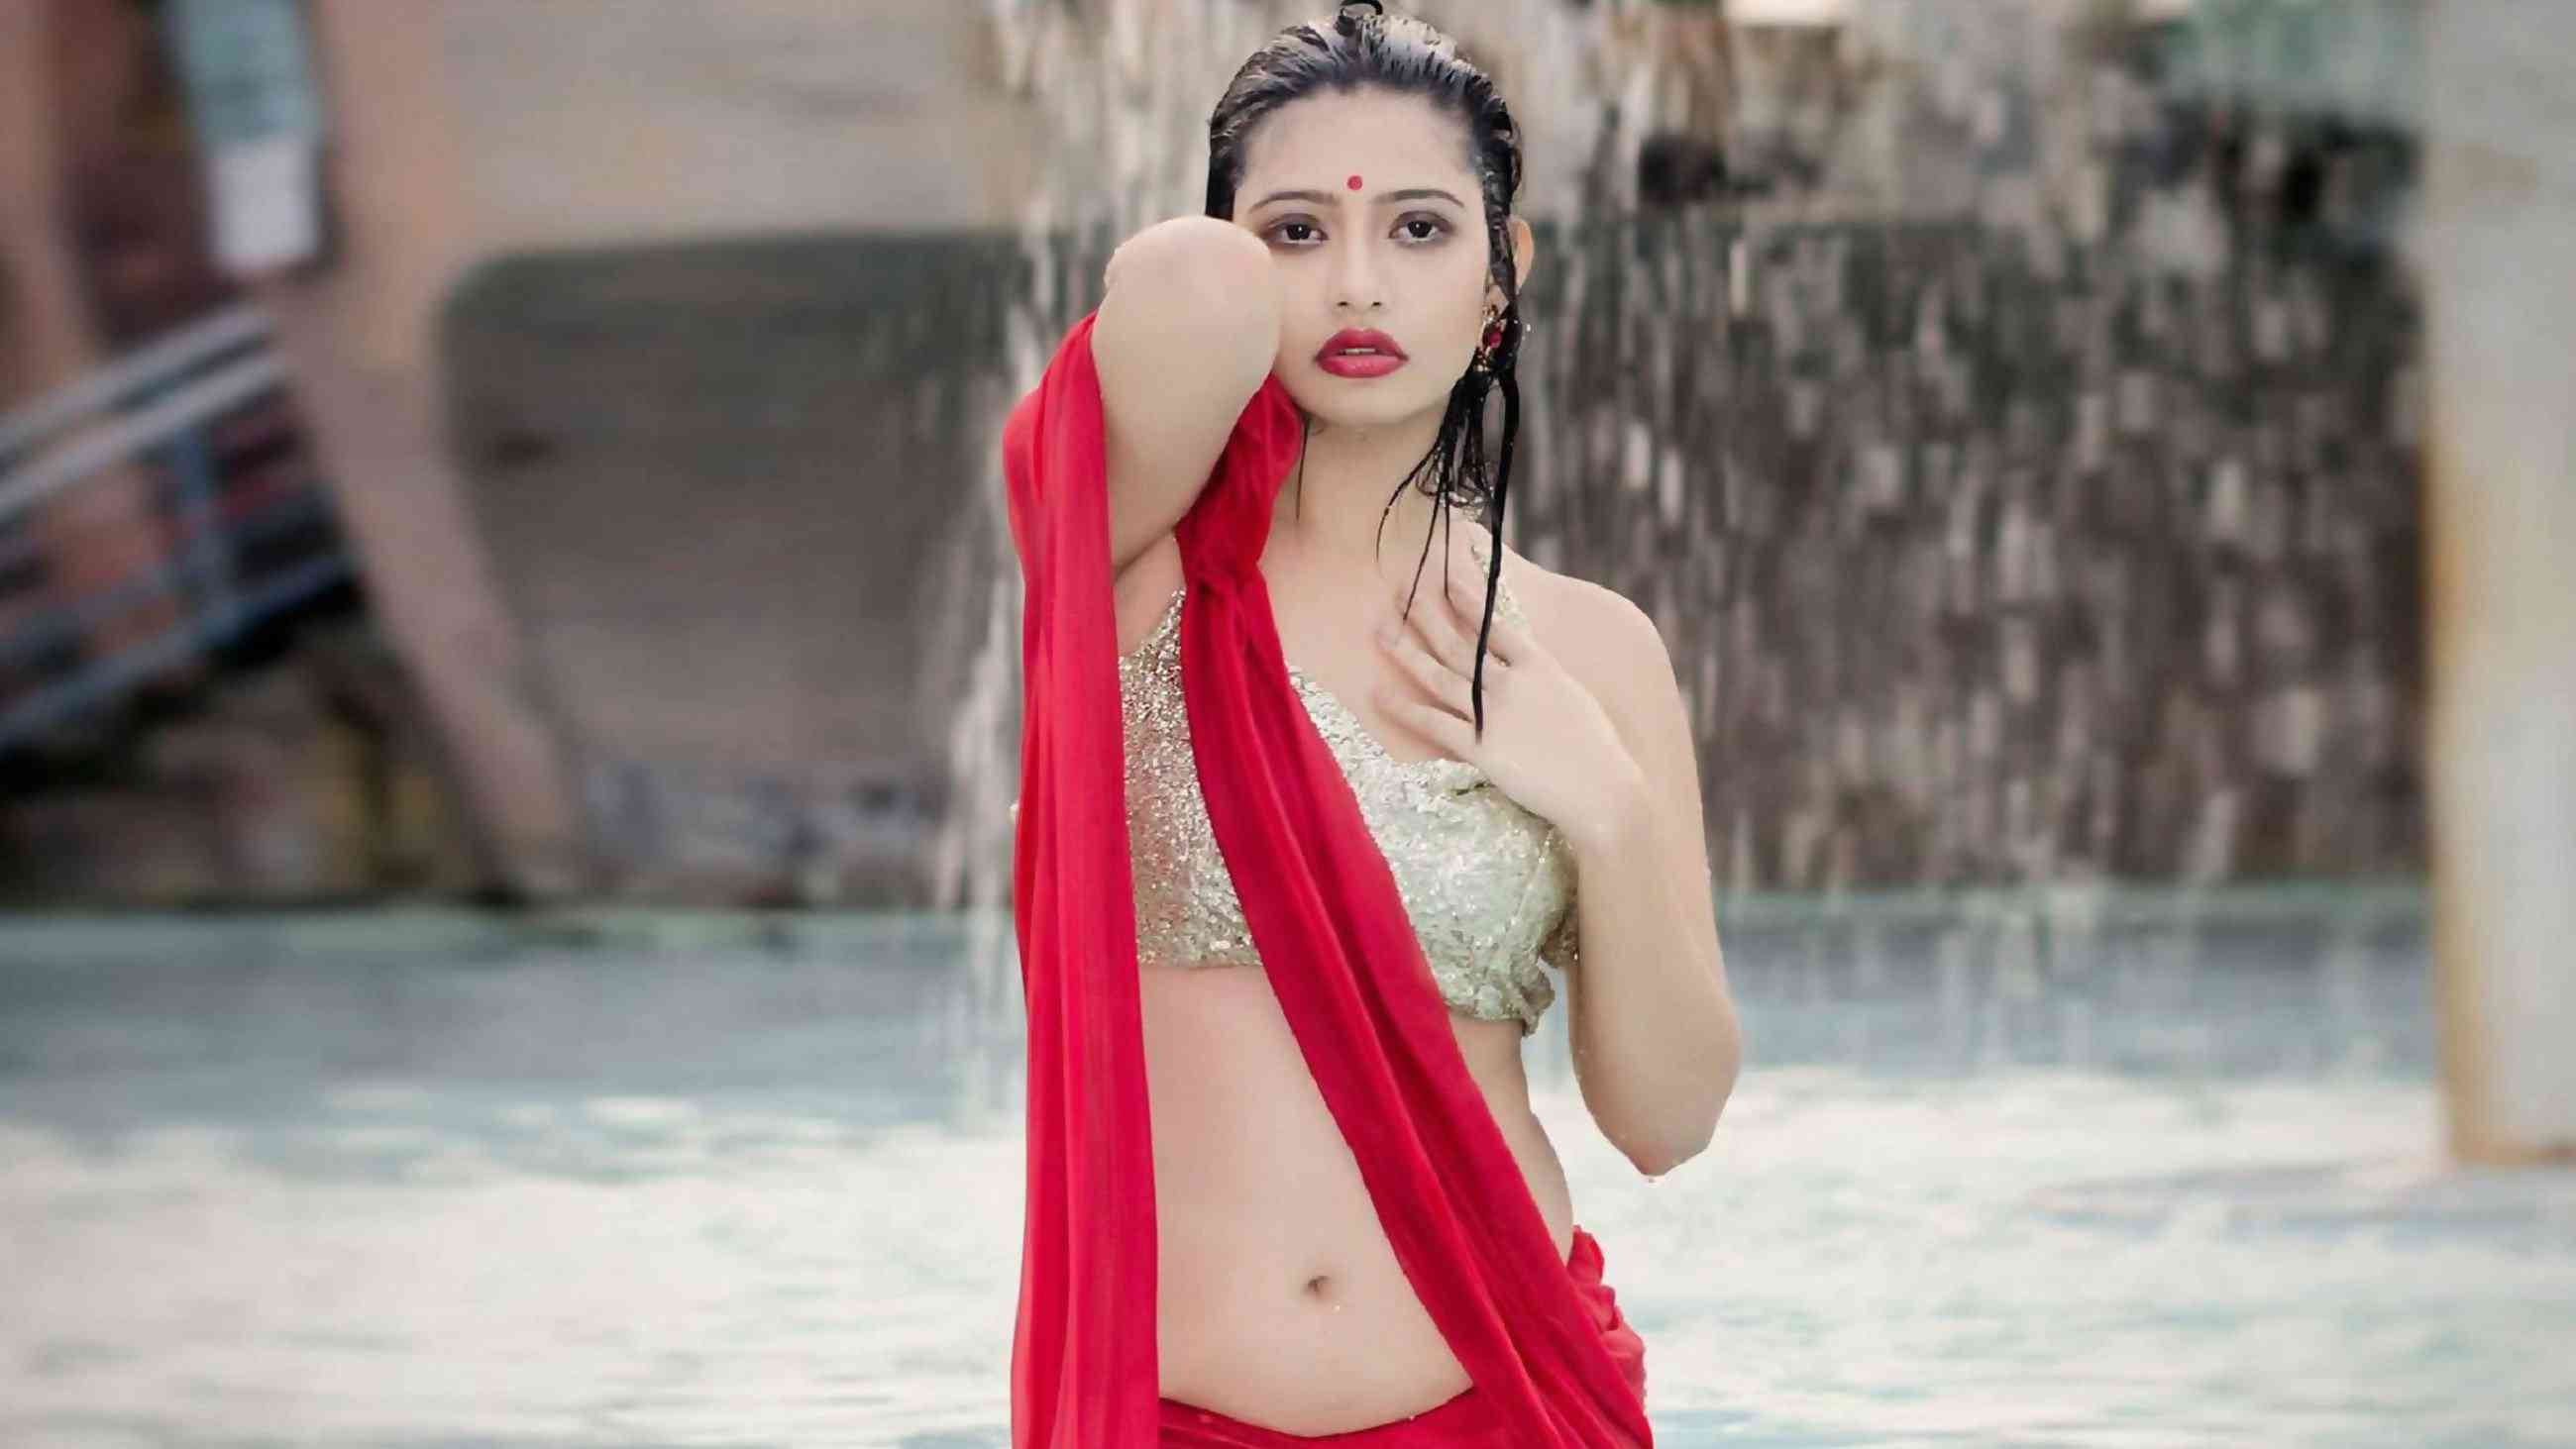 Model Call Gilrs In Noida